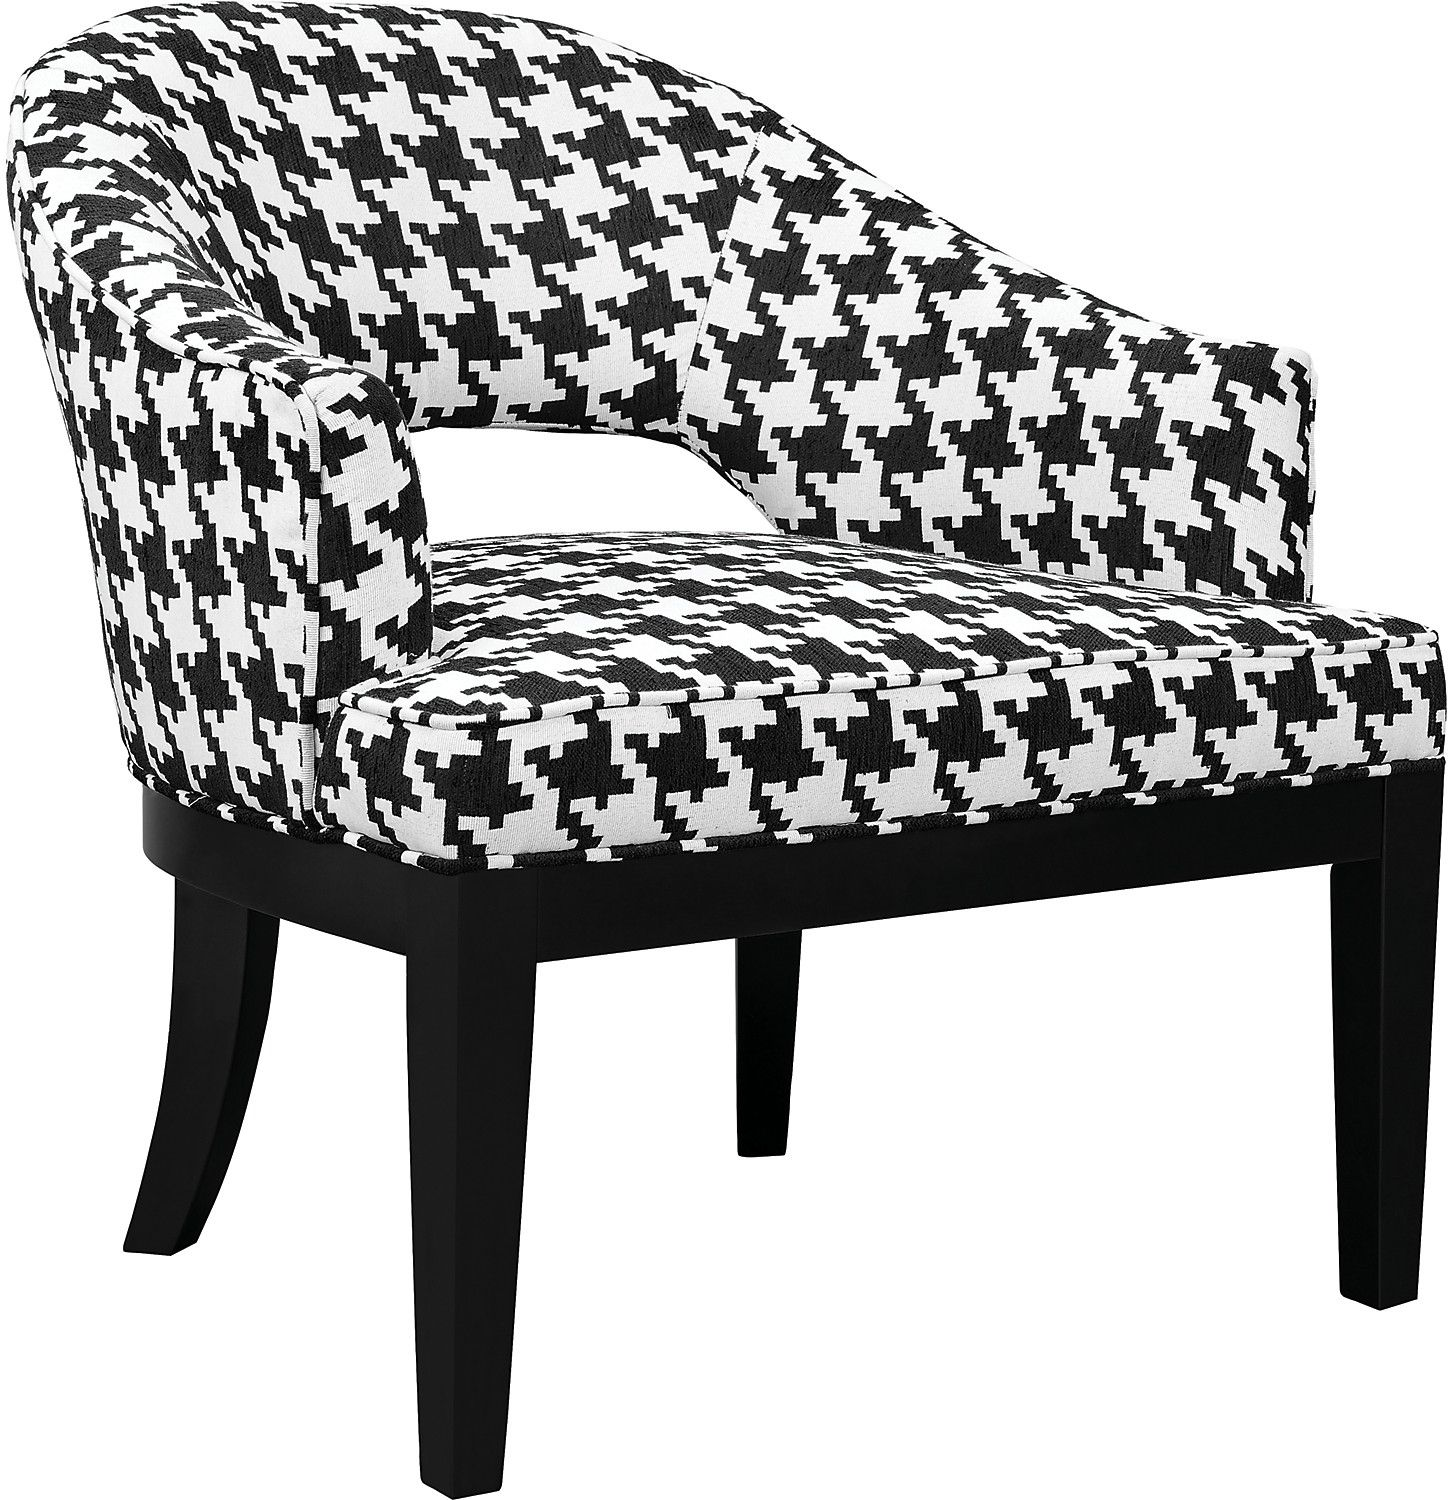 macy houndstooth linenlook fabric accent chair – black and white  - macy houndstooth linenlook fabric accent chair – black and white  thebrick